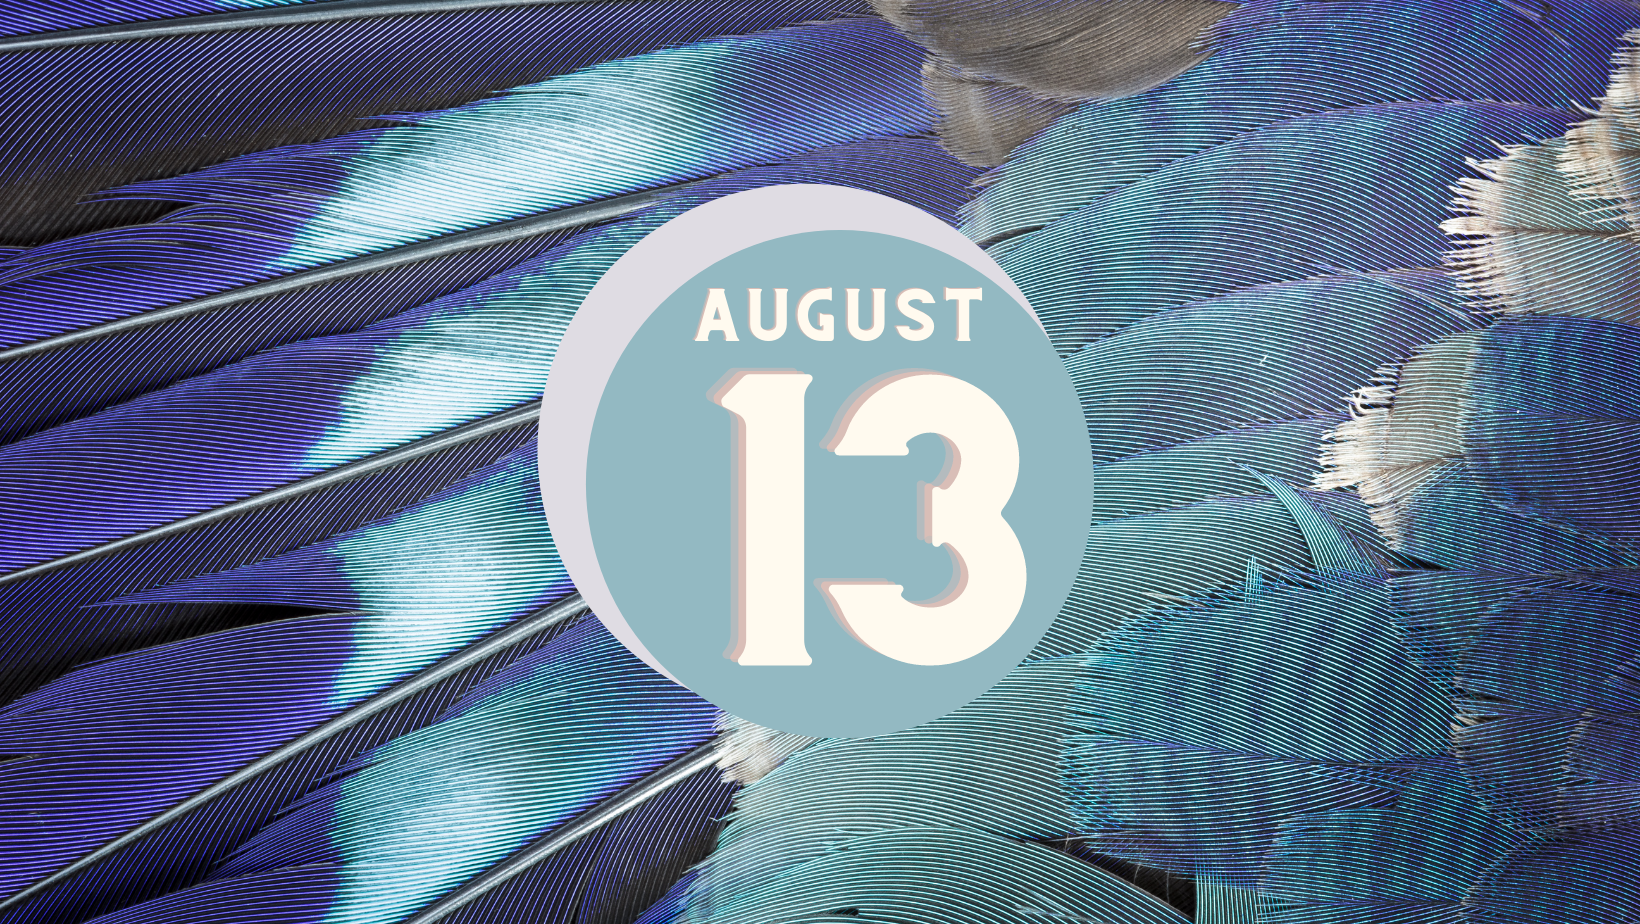 blue and grey feather background, circles and text on circle reads August 13